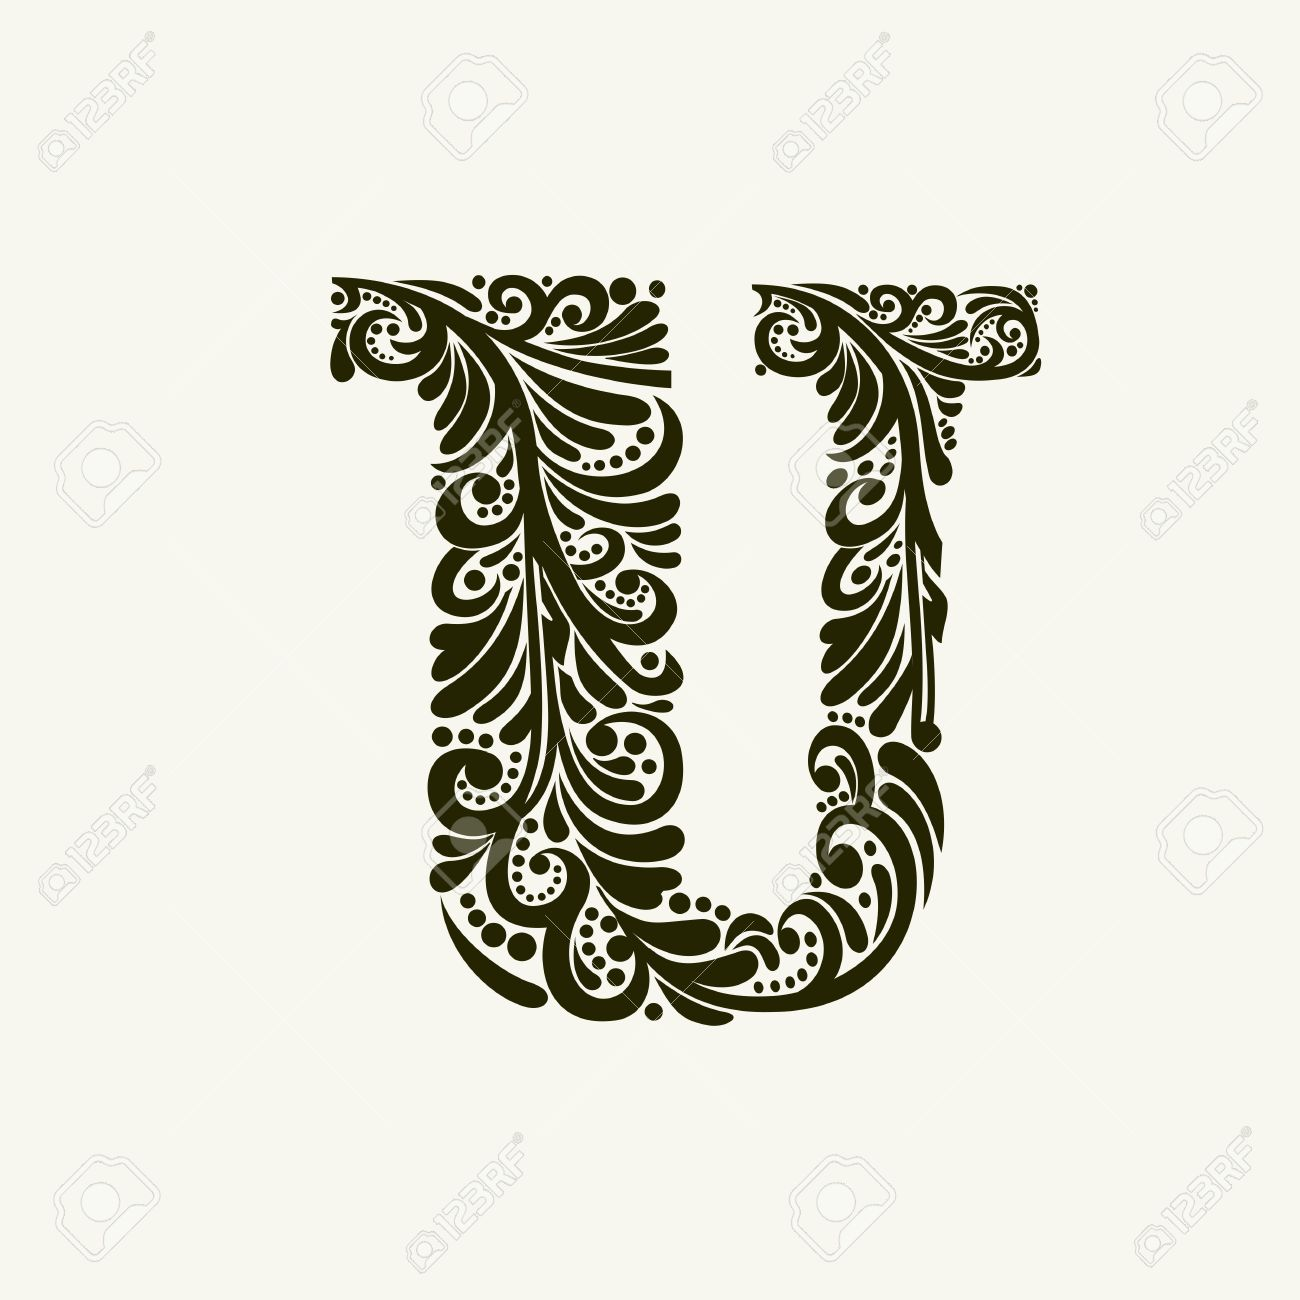 Elegant Capital Letter U In The Style Of Baroque To Use Monograms Logos